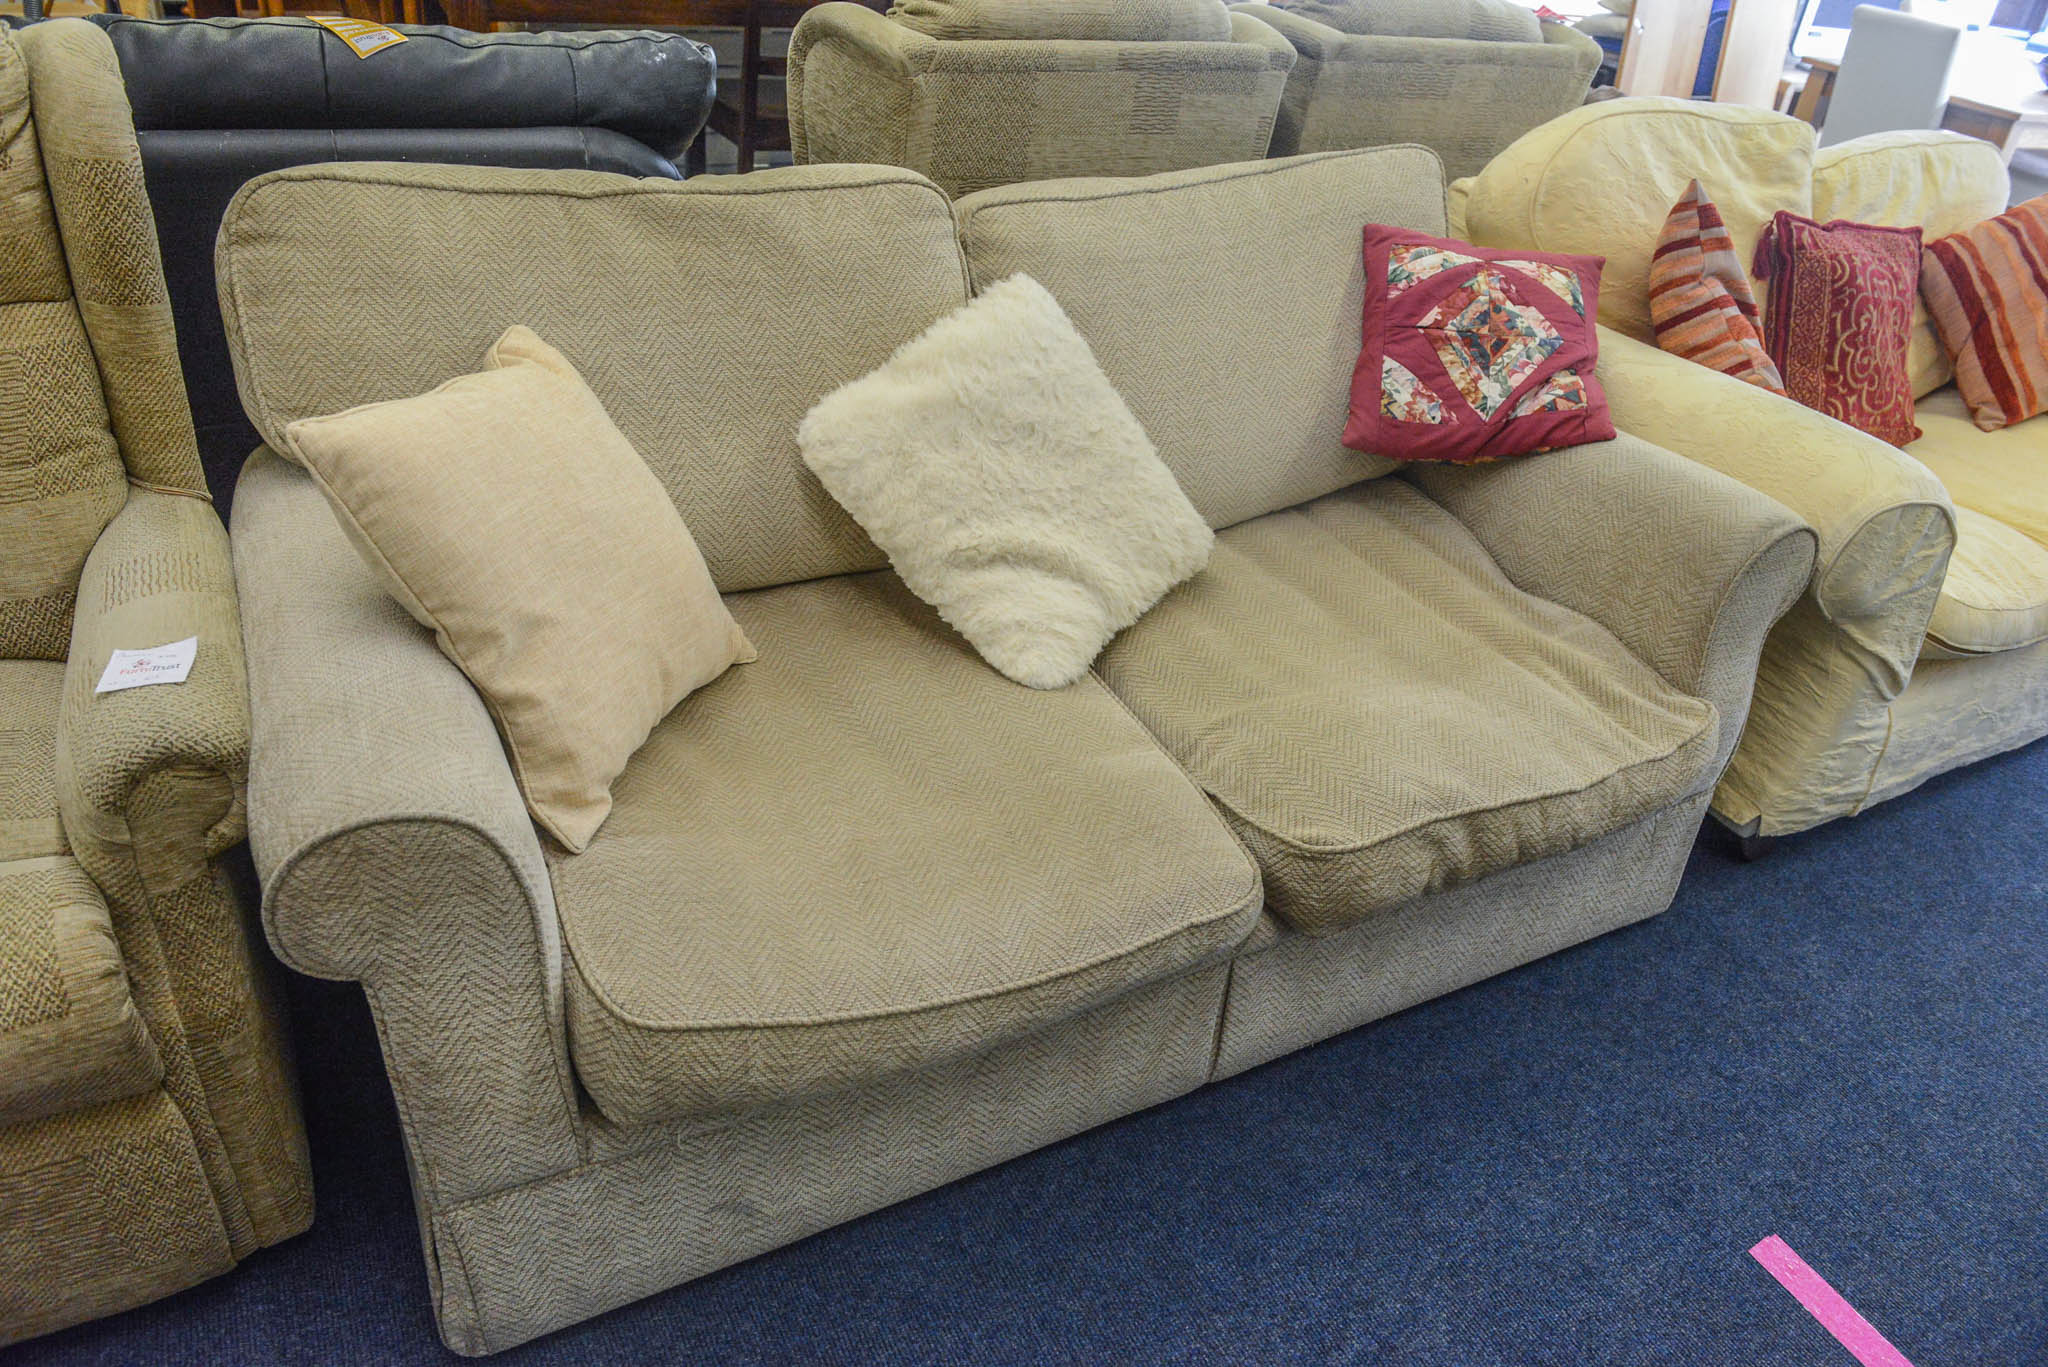 Marks & Spencers two seater sofa bed. 